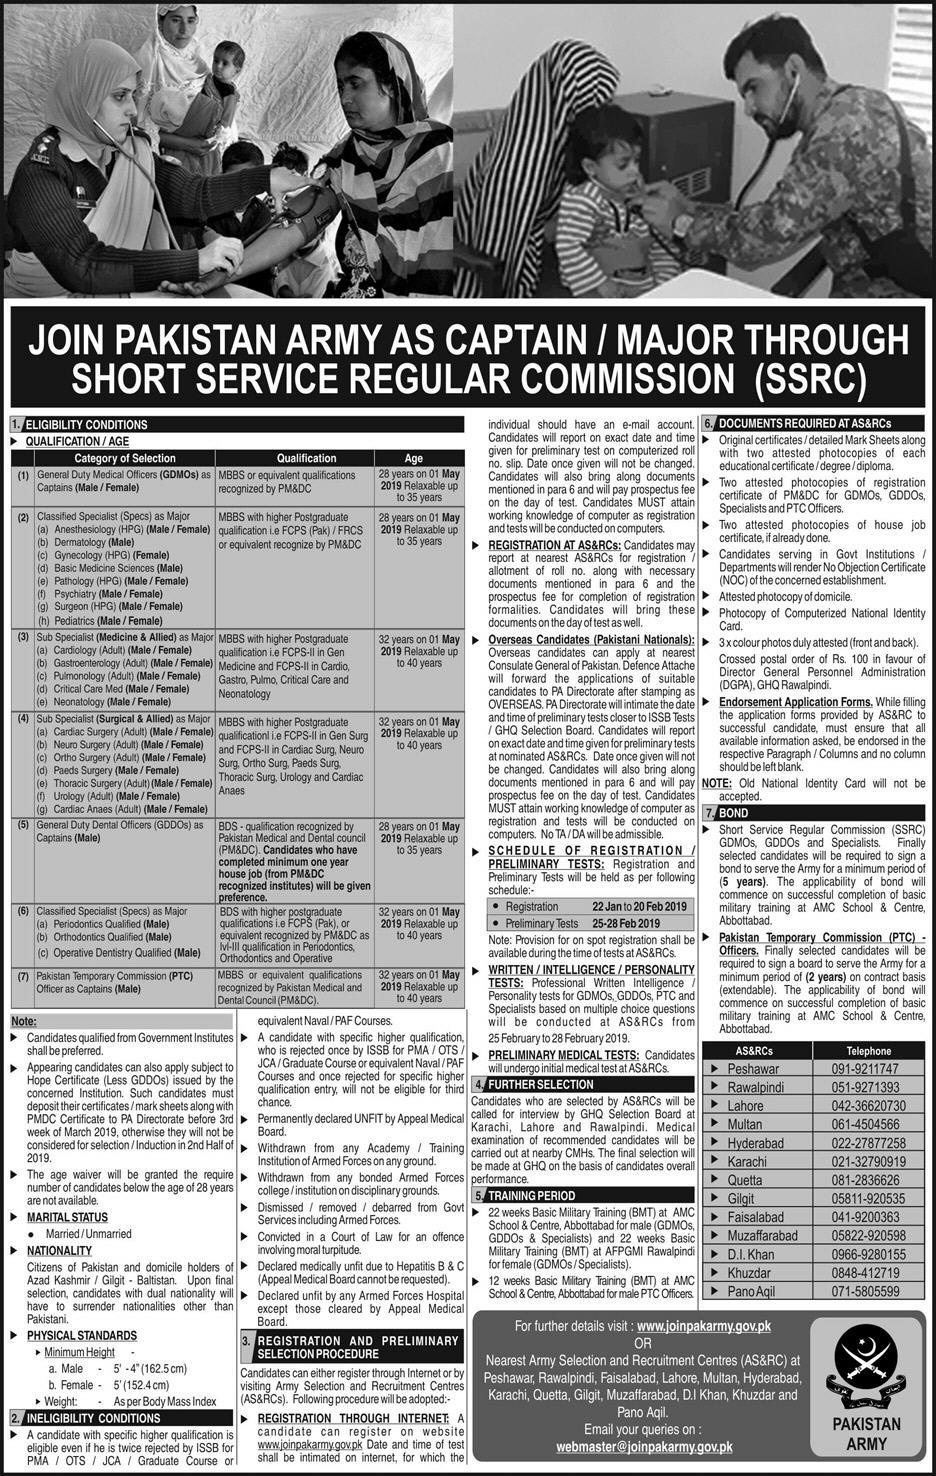 Pakistan Army Captain, Major Jobs 2019 Through SSRC Registration Form Online